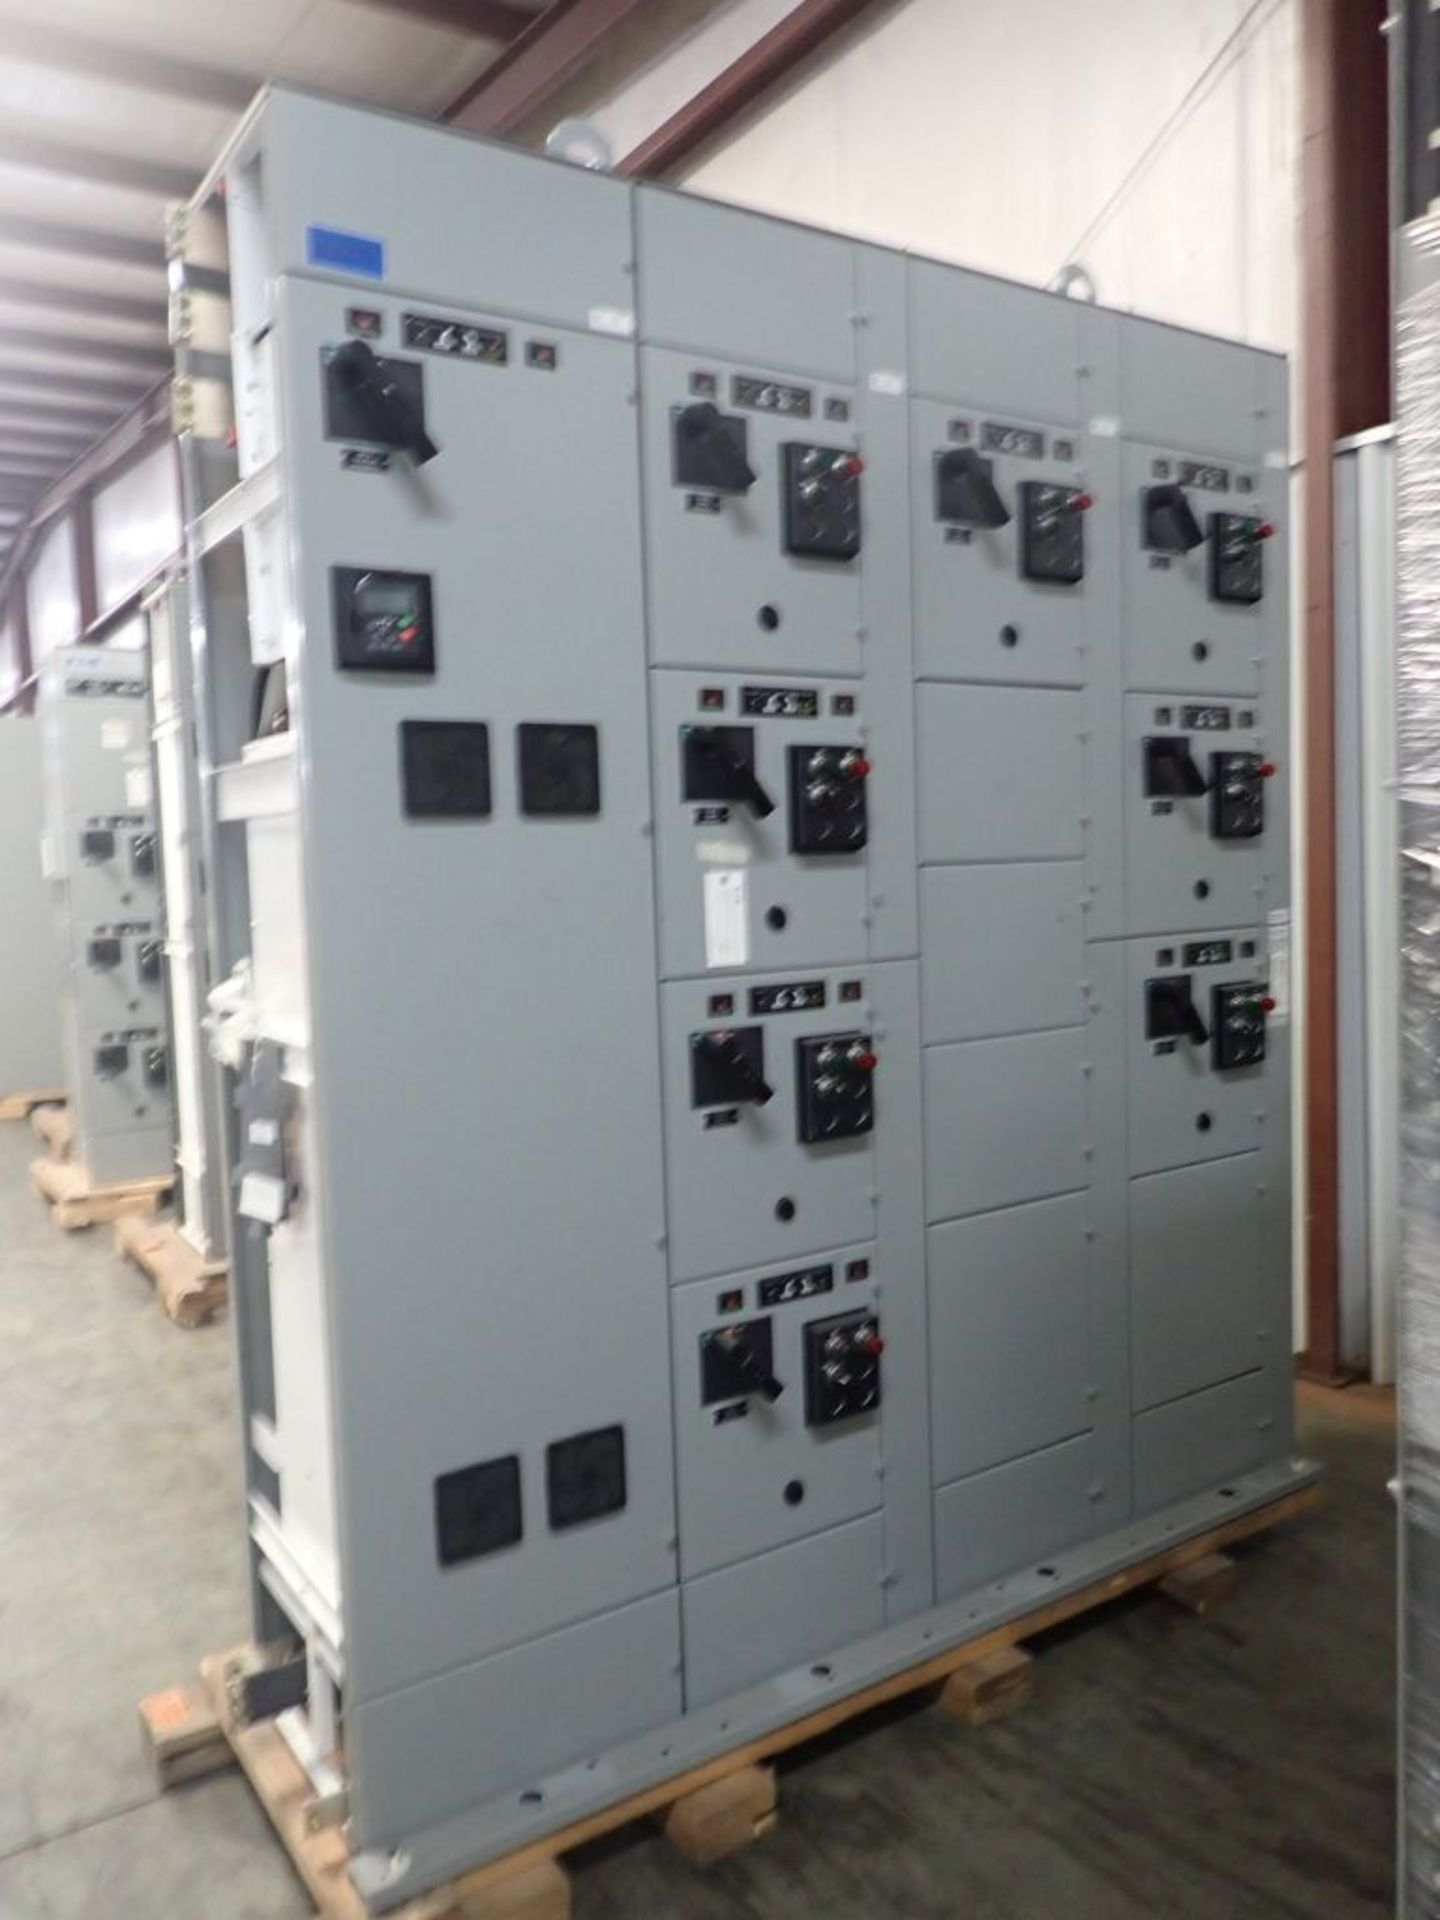 Eaton Freedom 2100 Series Motor Control Center | (11) F206-30A-10HP; (5) F206-15A-10HP; (1) SVX900- - Image 3 of 102